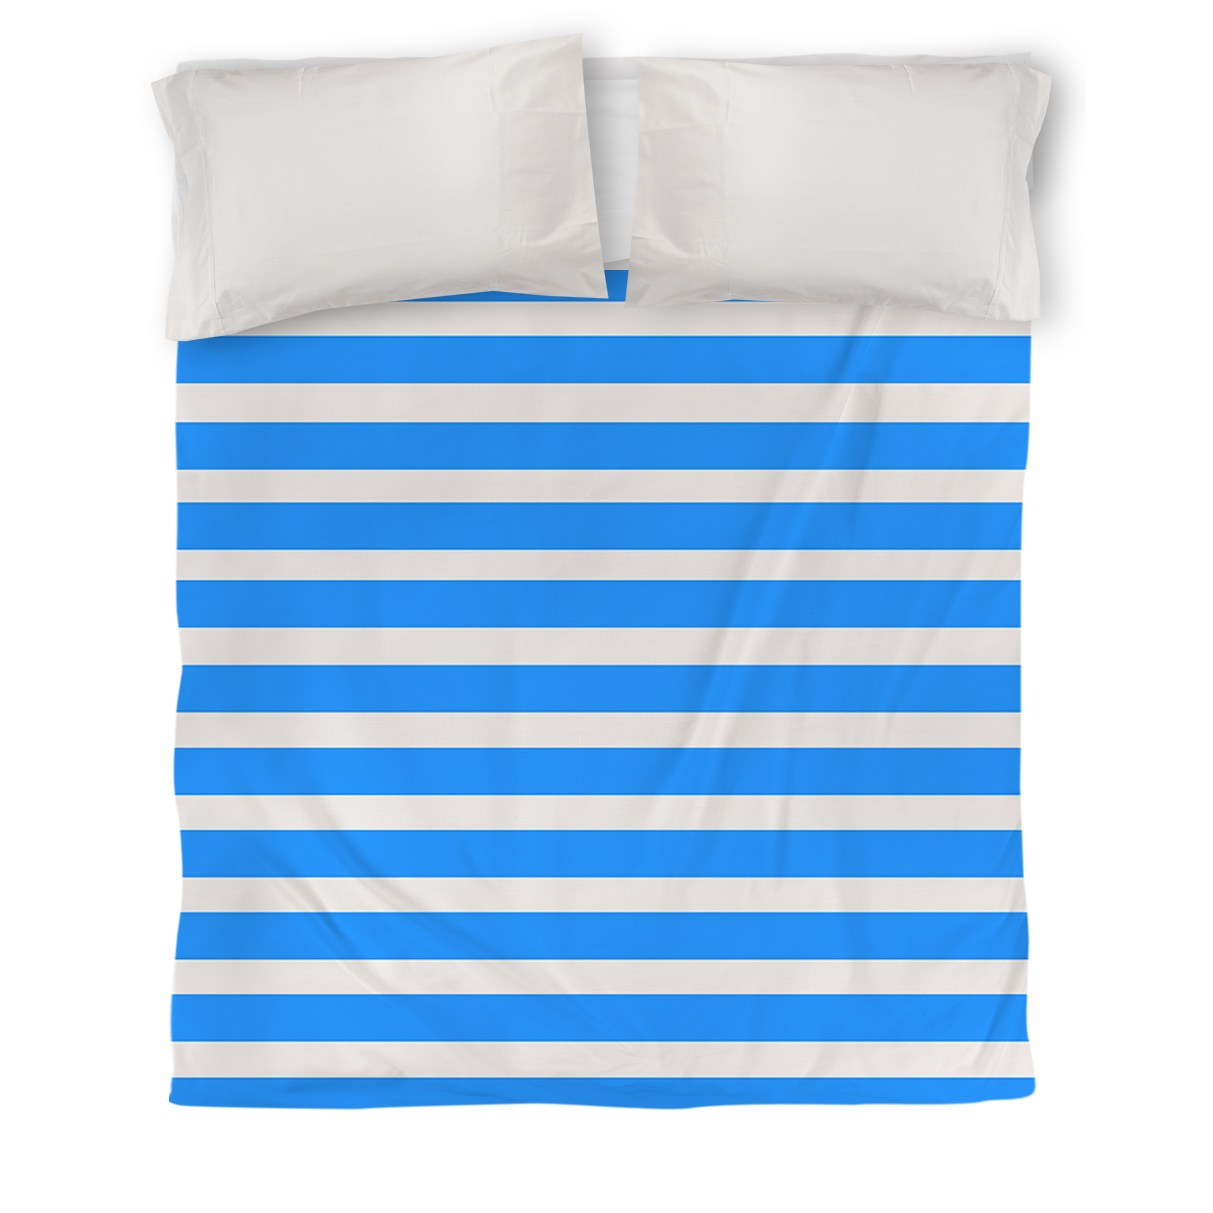 IDG Bright Stripes Duvet Cover, Robin Egg